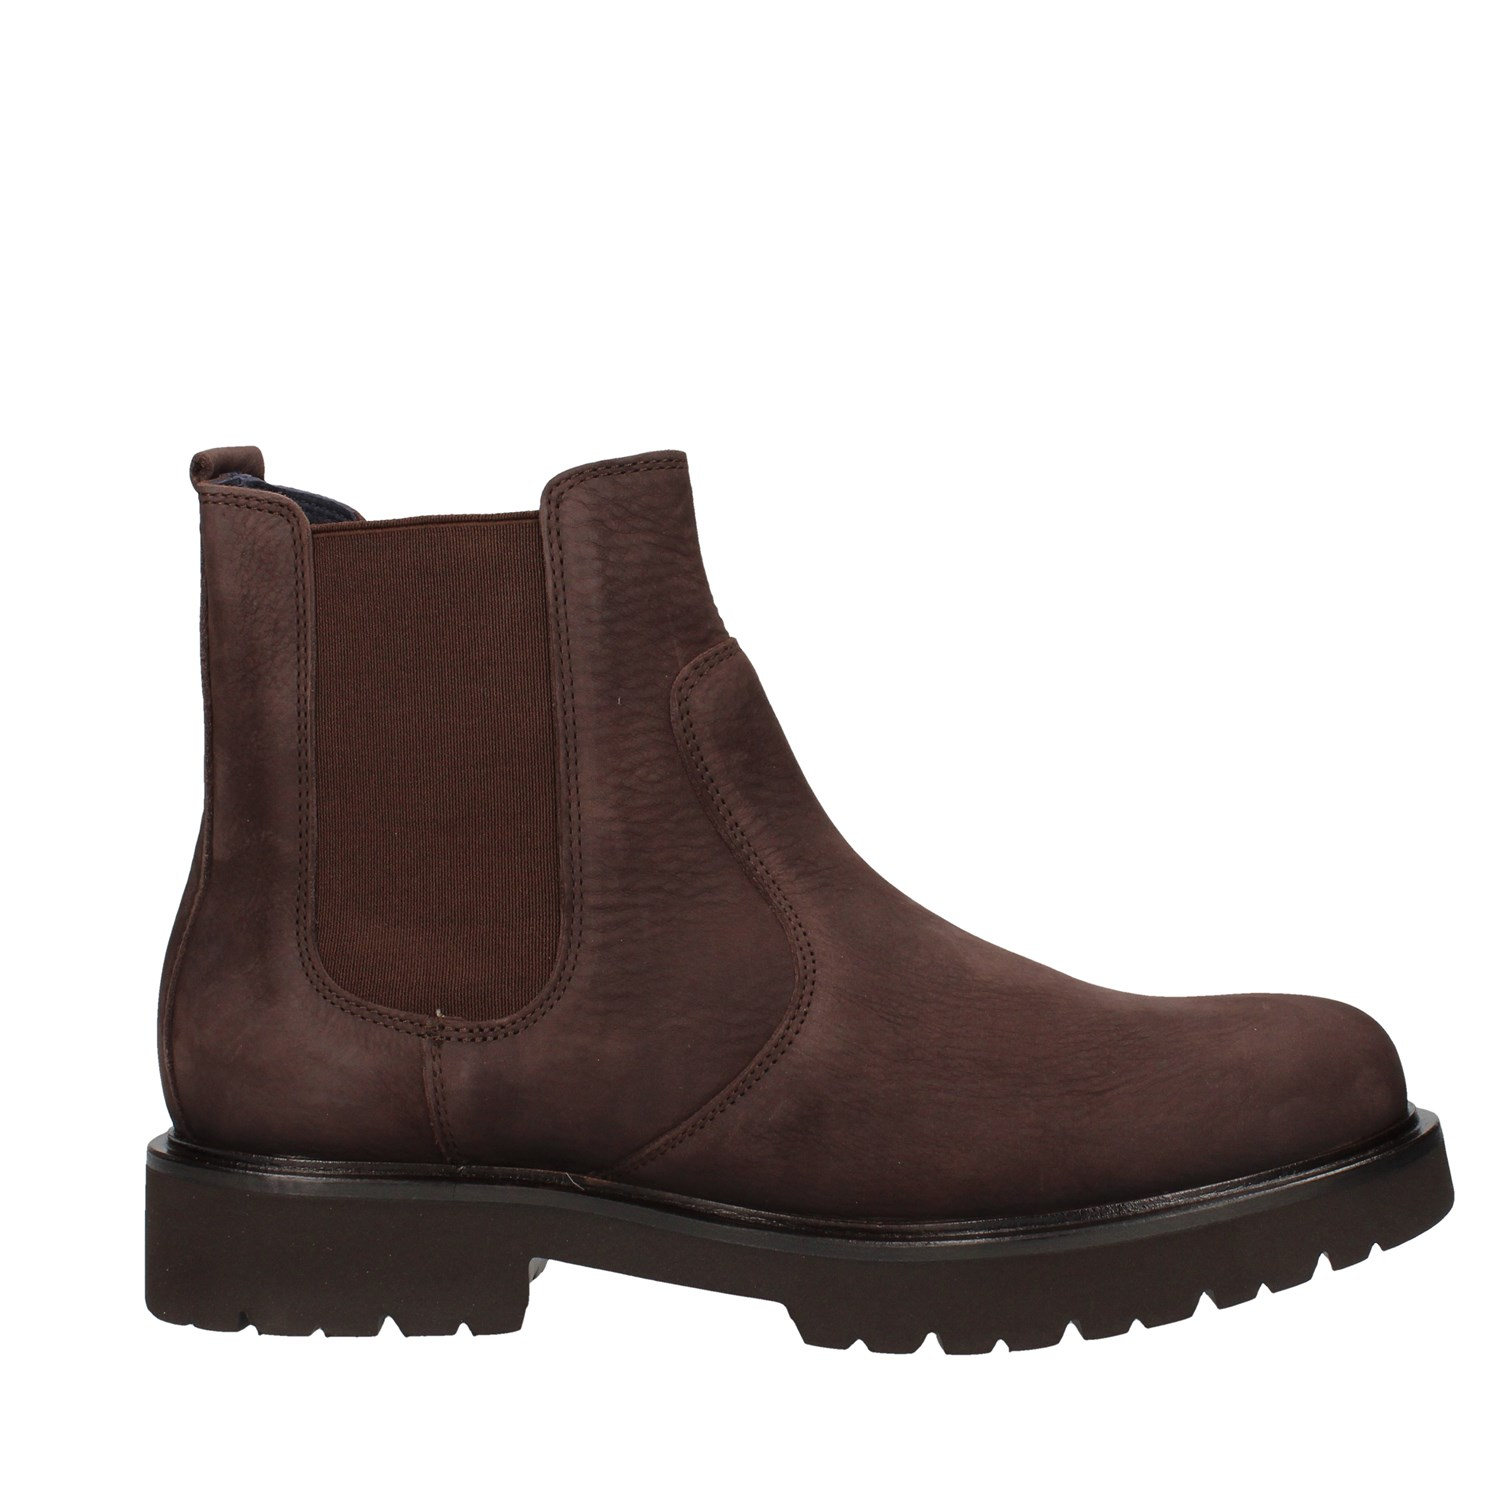 Callaghan Shoes Man boots BROWN 16502